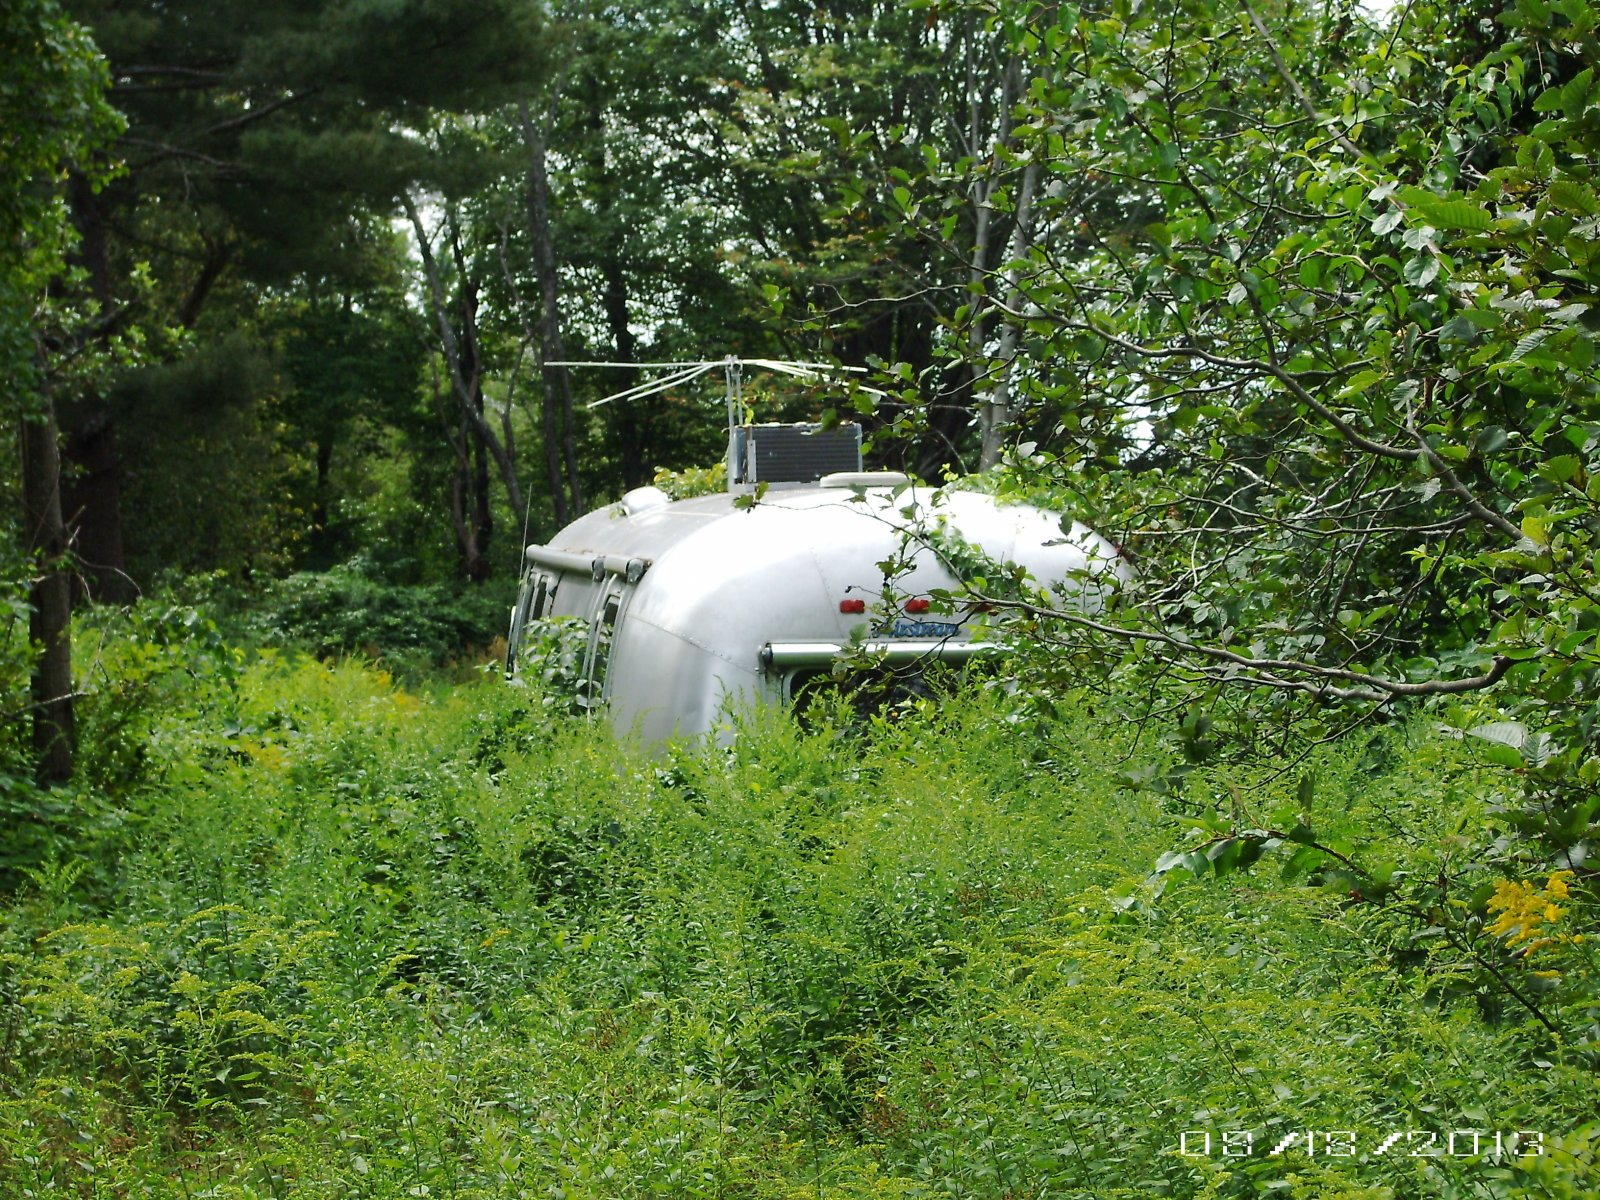 Click image for larger version  Name:Airstream in the weeds 001.jpg Views:338 Size:684.5 KB ID:194525